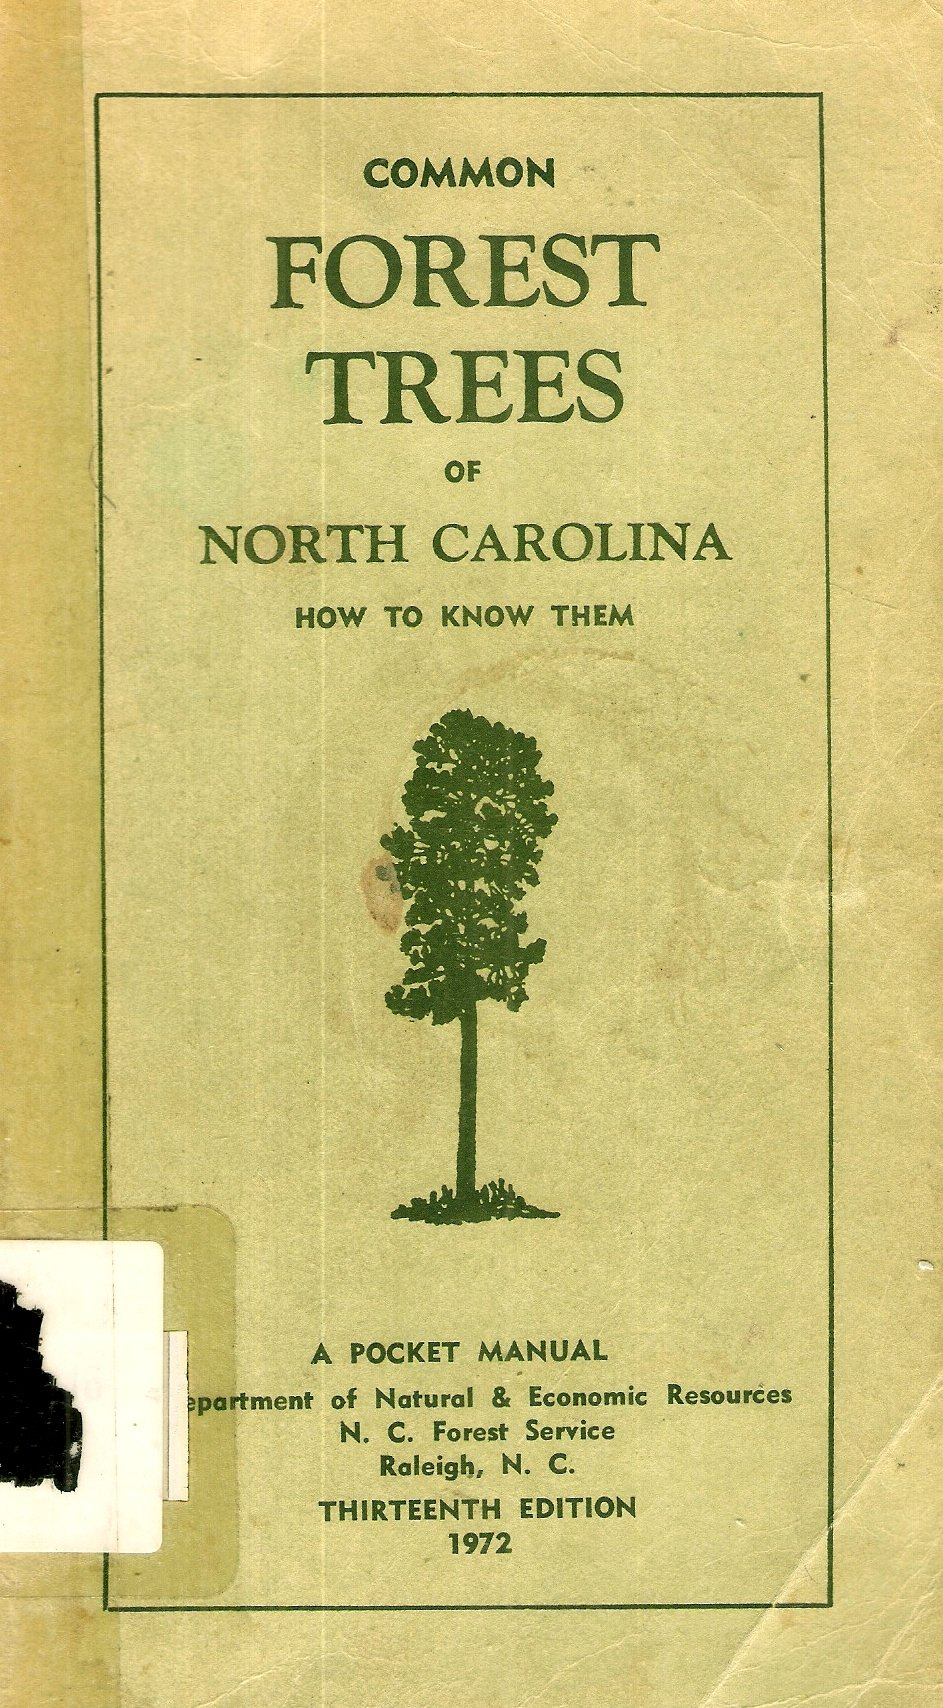 Common Forest Trees of North Carolina: How to Know Them, a Pocket Manual